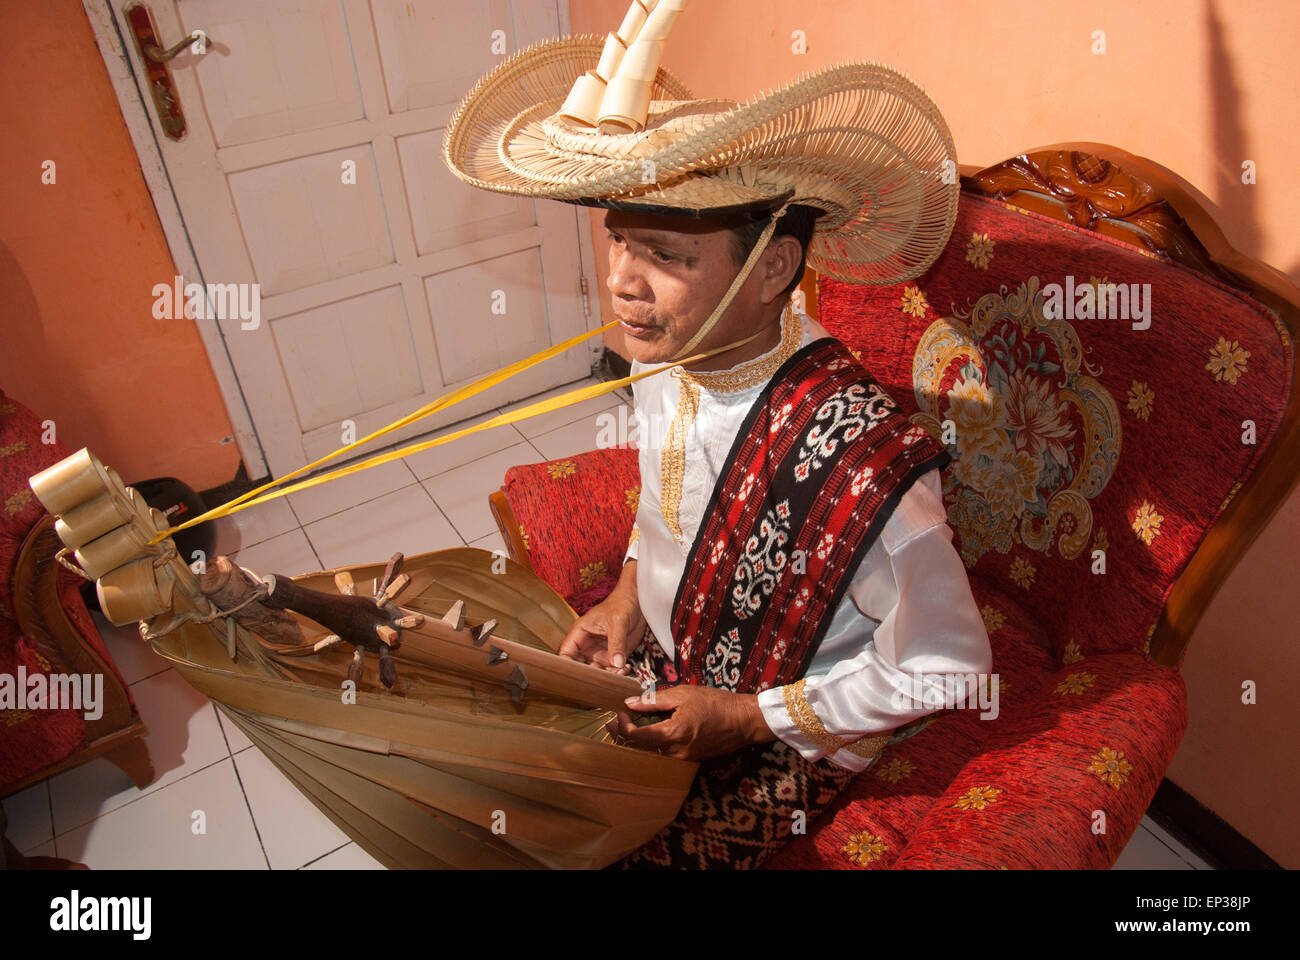 Man wears traditional clothes as he plays sasando music instrument of Rote Island, Indonesia. - Stock Image